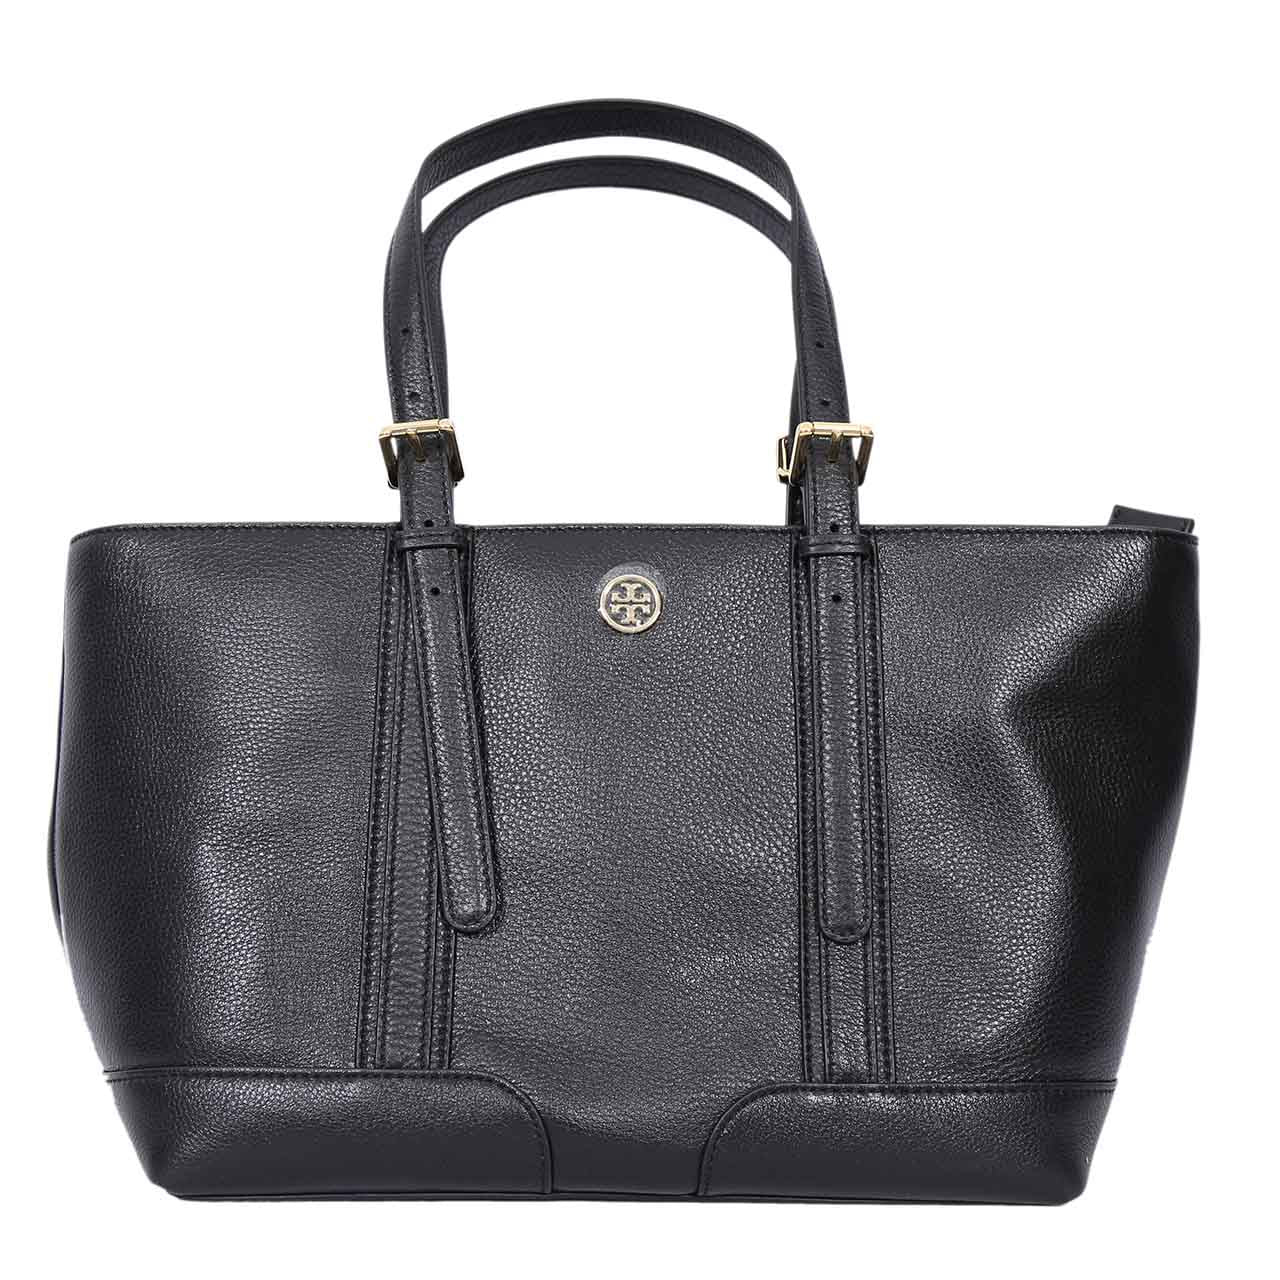 TORY BURCH LANDON SHOULDER TOTE